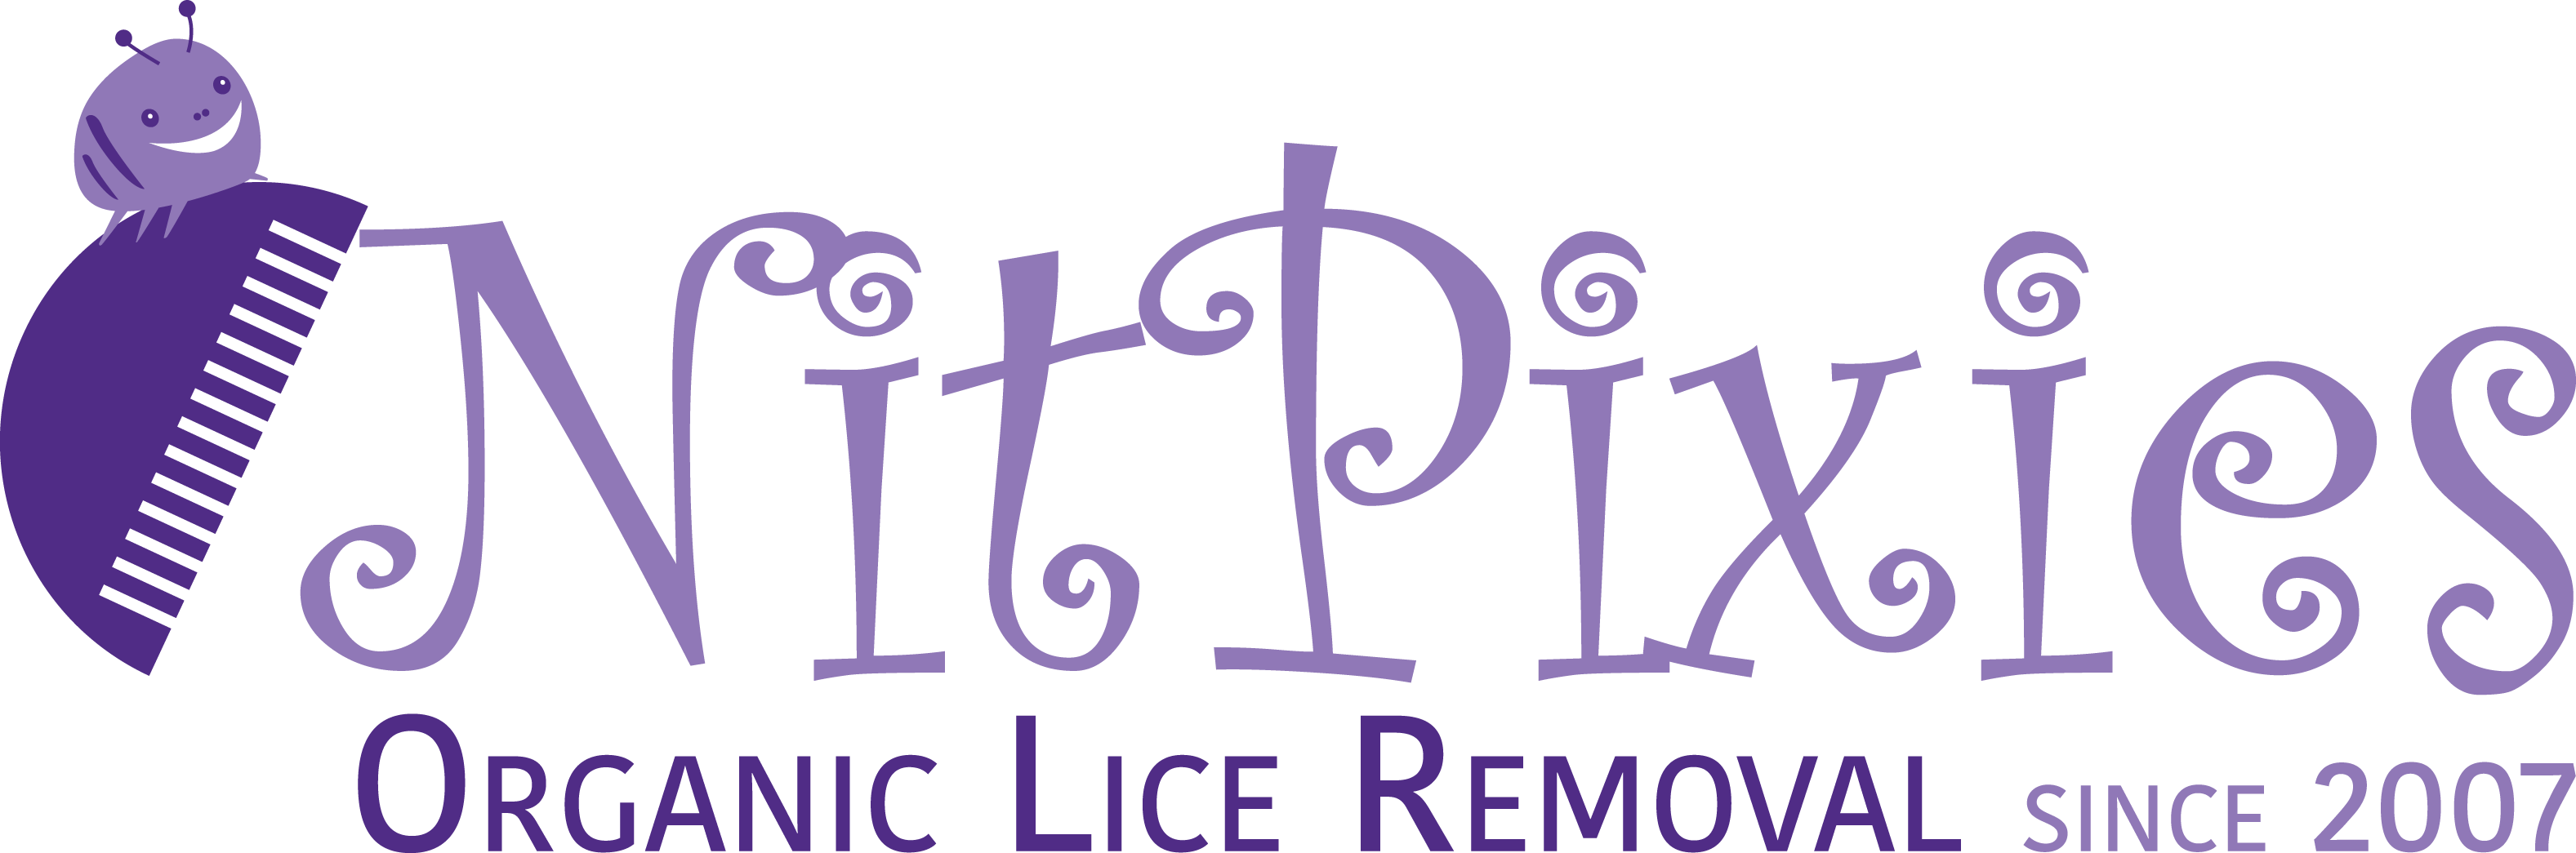 Lice Treatment | Lice Removal | Lice Products | Oakland | San Rafael